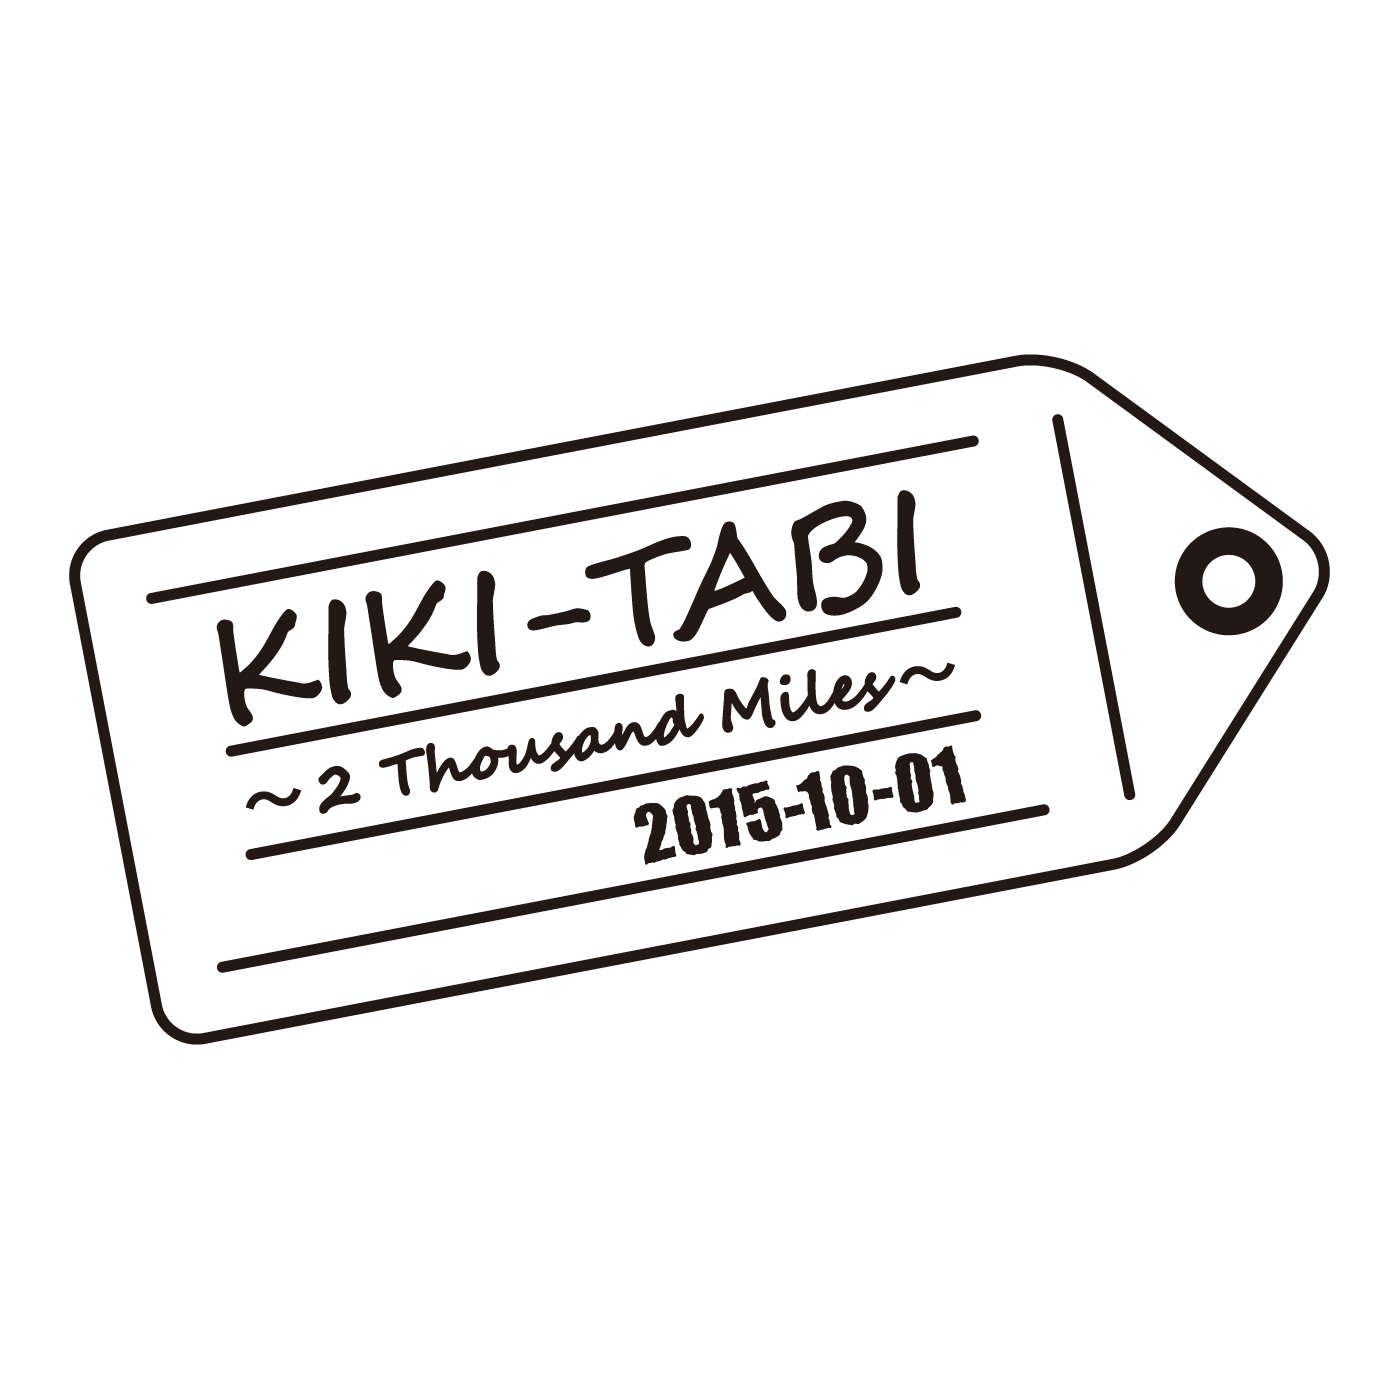 KIKI-TABI ~2 Thousand Miles~